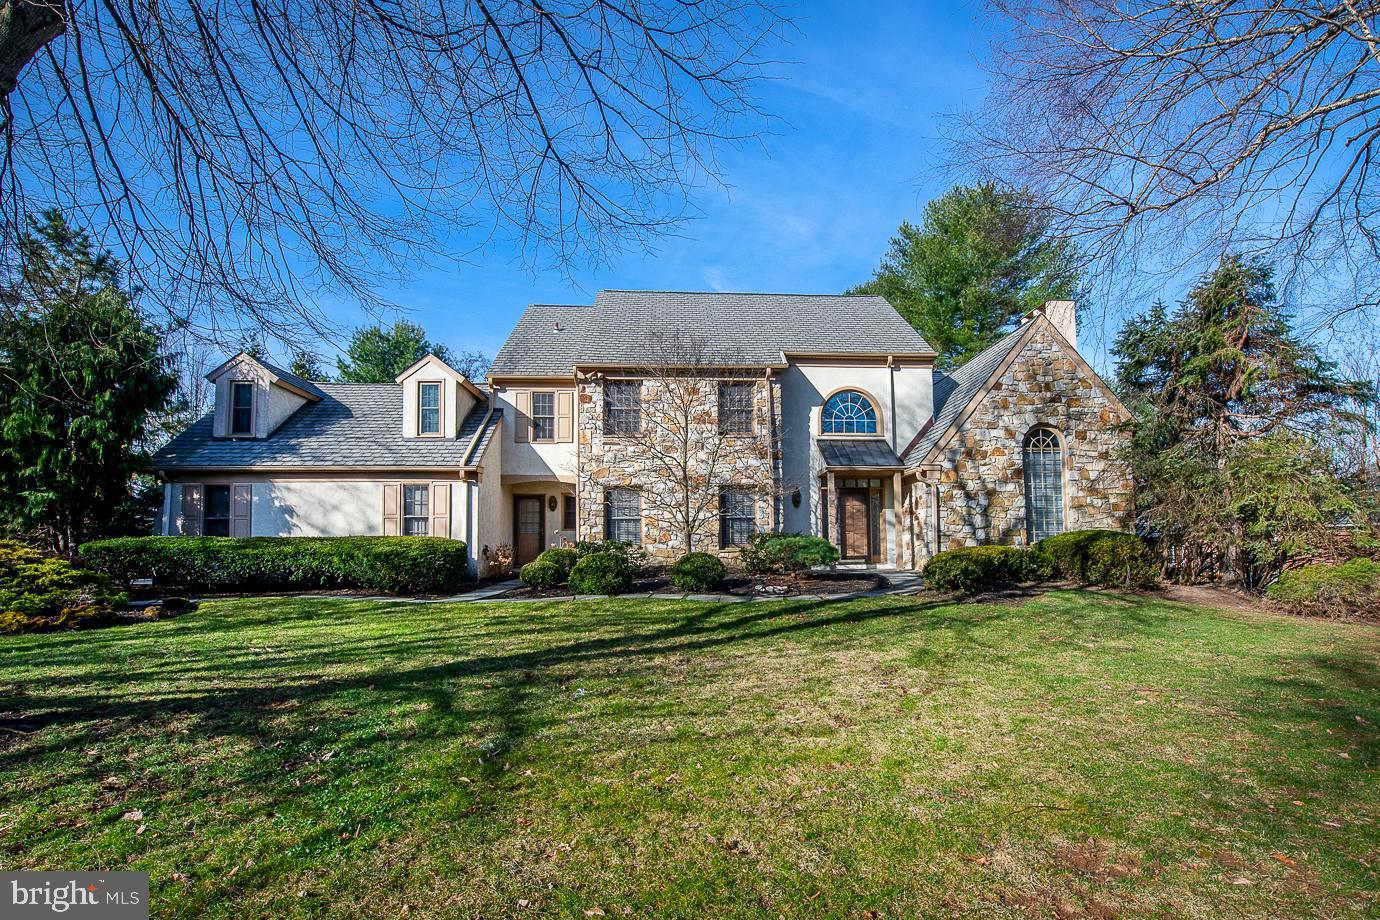 Sitting on a serene 0.69 acre cul-de-sac in Bryn Mawr, you will find this wonderful 5 bedroom, 3 full and 2 half bath, 3740 sq ft Colonial.  Light floods the 2-story, center hall entryway leading you into this meticulously maintained home featuring hardwood floors throughout, a large traditional living room with hardwood floors, fireplace and a large formal dining room with chair rail and crown moldings.  The spacious kitchen does not disappoint with beautiful white cabinetry, center island, granite counters,  and stainless steel appliances including gas range, double oven and wine fridge.  The breakfast room has sky lights and a wall of sliders which lead out to the large back deck which is perfect for those summer barbeques and pool parties.  Conveniently located off the kitchen is the cozy family room with brick fire place and recessed lighting.  Finishing this level are a home office, 2 half bathrooms and a laundry room.  Ascend the open staircase to the primary suite with 2 walk-in closets and grand ensuite bathroom boasting vaulted ceilings, skylights, jacuzzi tub, walk-in shower and double marble vanity.  Four sizeable bedrooms with large closets, two with a shared Jack and Jill full bathroom and a full hall bathroom complete the 2nd floor.  Finished basement offers an oversized play room, second office or gym, cedar closet and storage space.  Don't miss the beautiful level, landscaped backyard with in-ground pool just in time for summer.  Additional features include a full house generator, dual zoned HVAC and an oversized 2-car garage.  Award winning Lower Merion Schools.  Walk to Harriton High School, close to major highways, shops and restaurants.  Schedule your showing today!